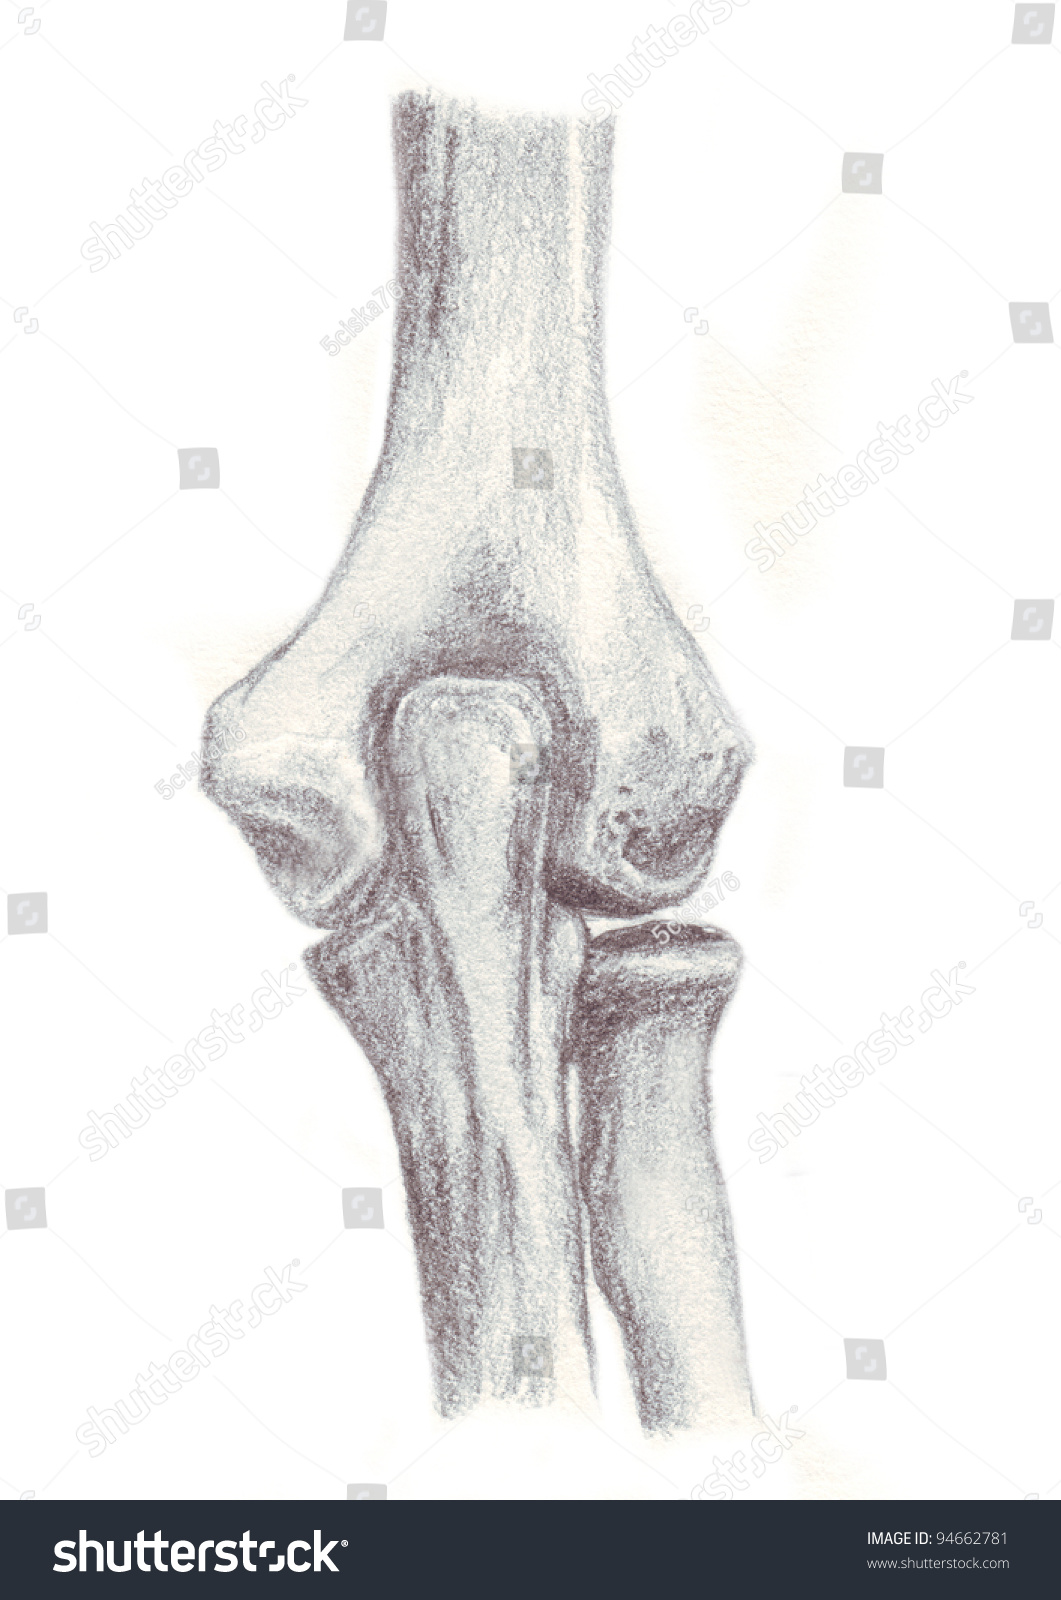 Human Anatomy Articulation Elbow Stock Illustration 94662781 ...